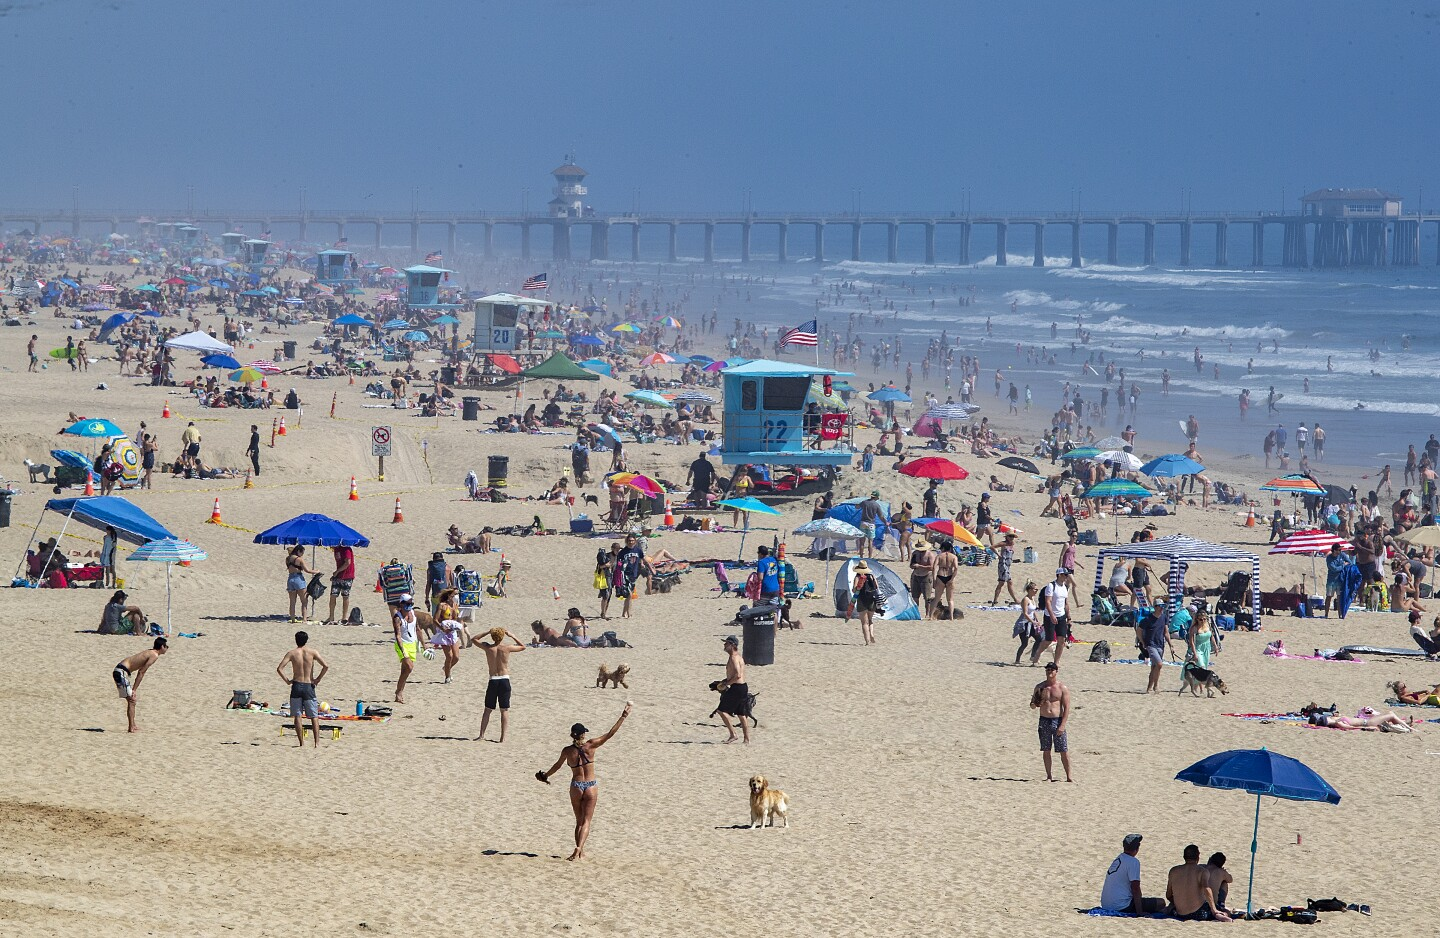 530535_la-me-heat-wave-beaches-oc_11_AJS.jpg